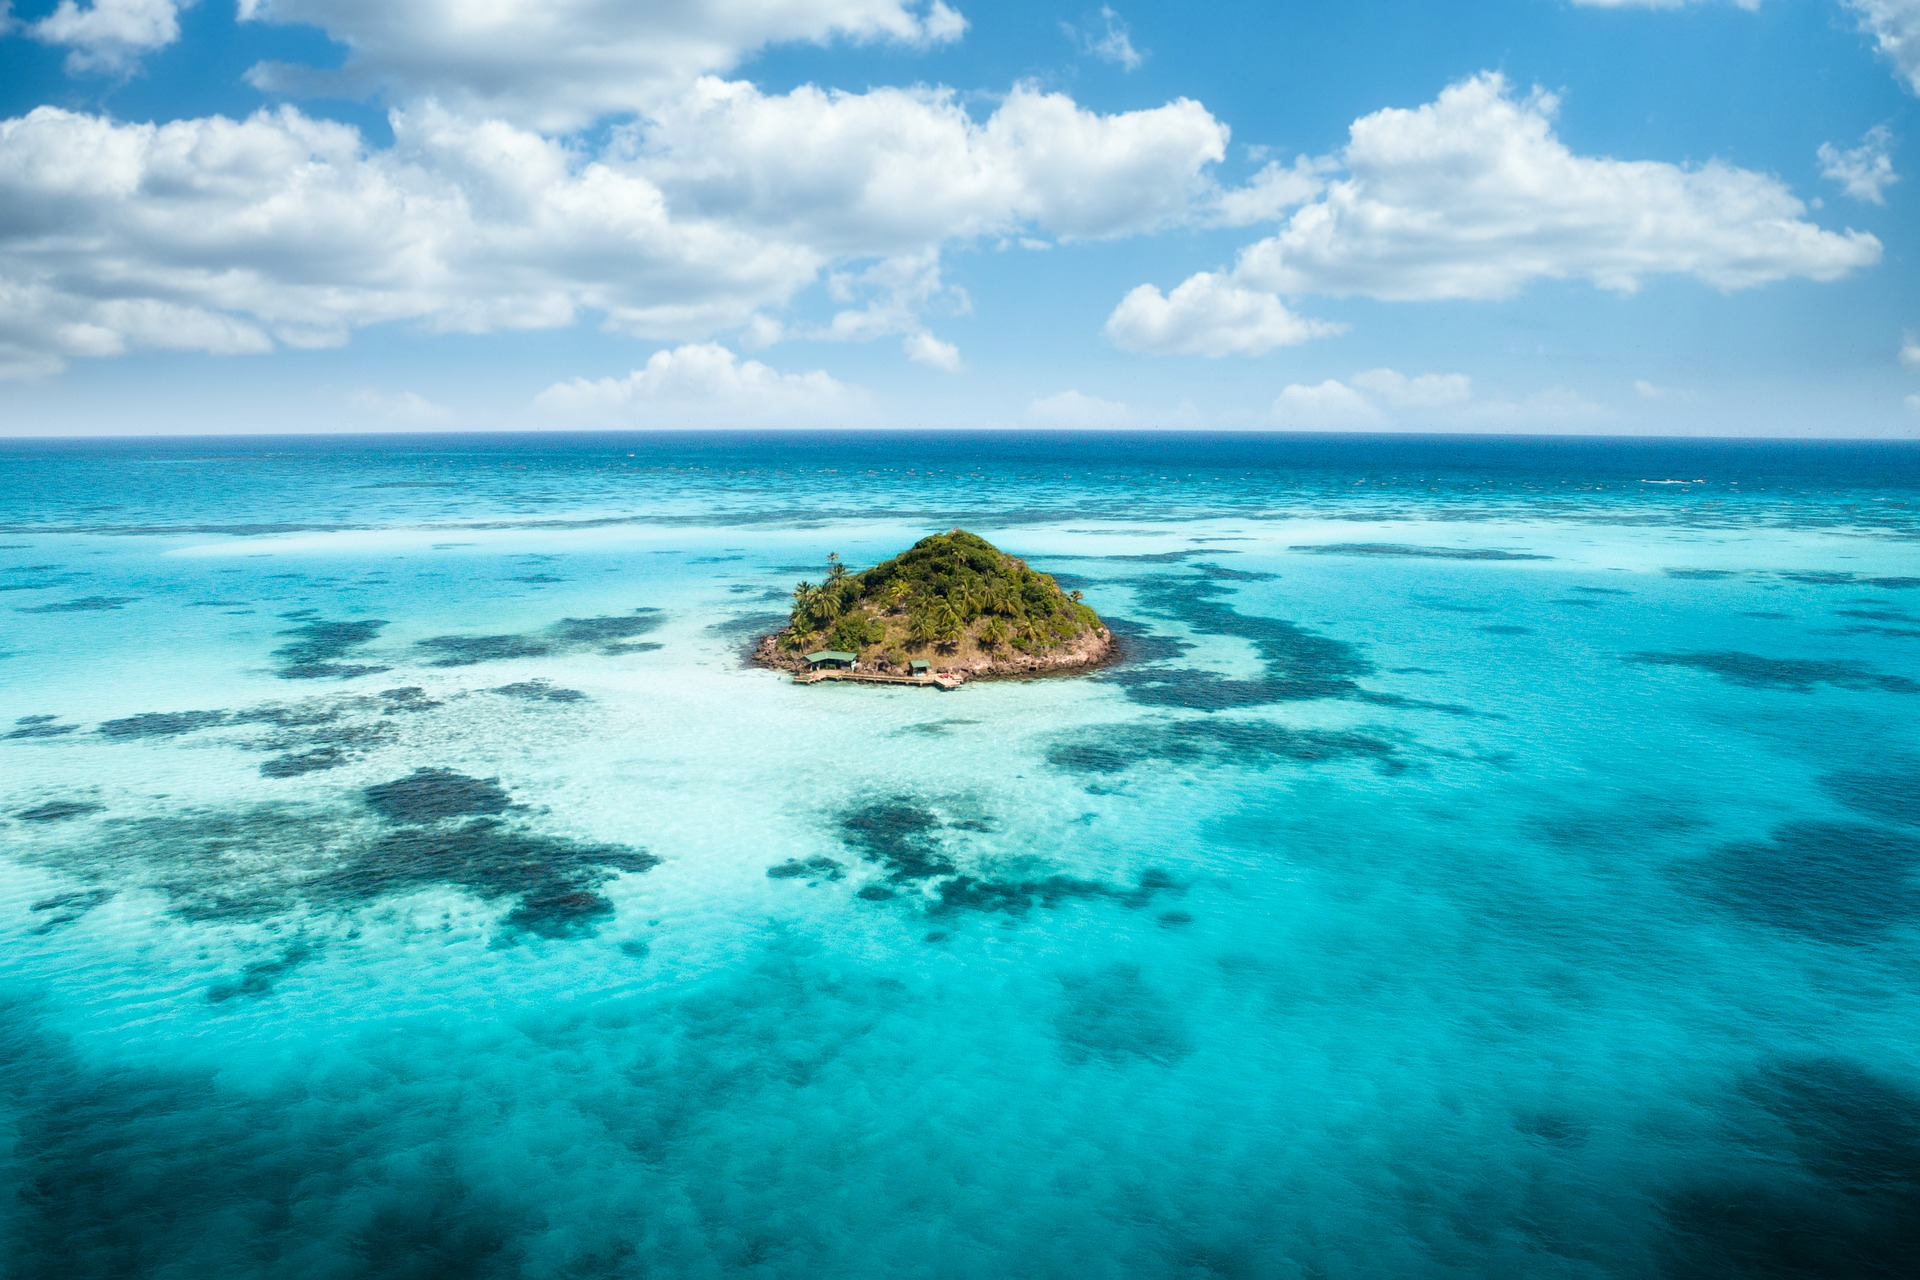 aerial of remote island in the middle of turquoise blue waters with reefs surrounding